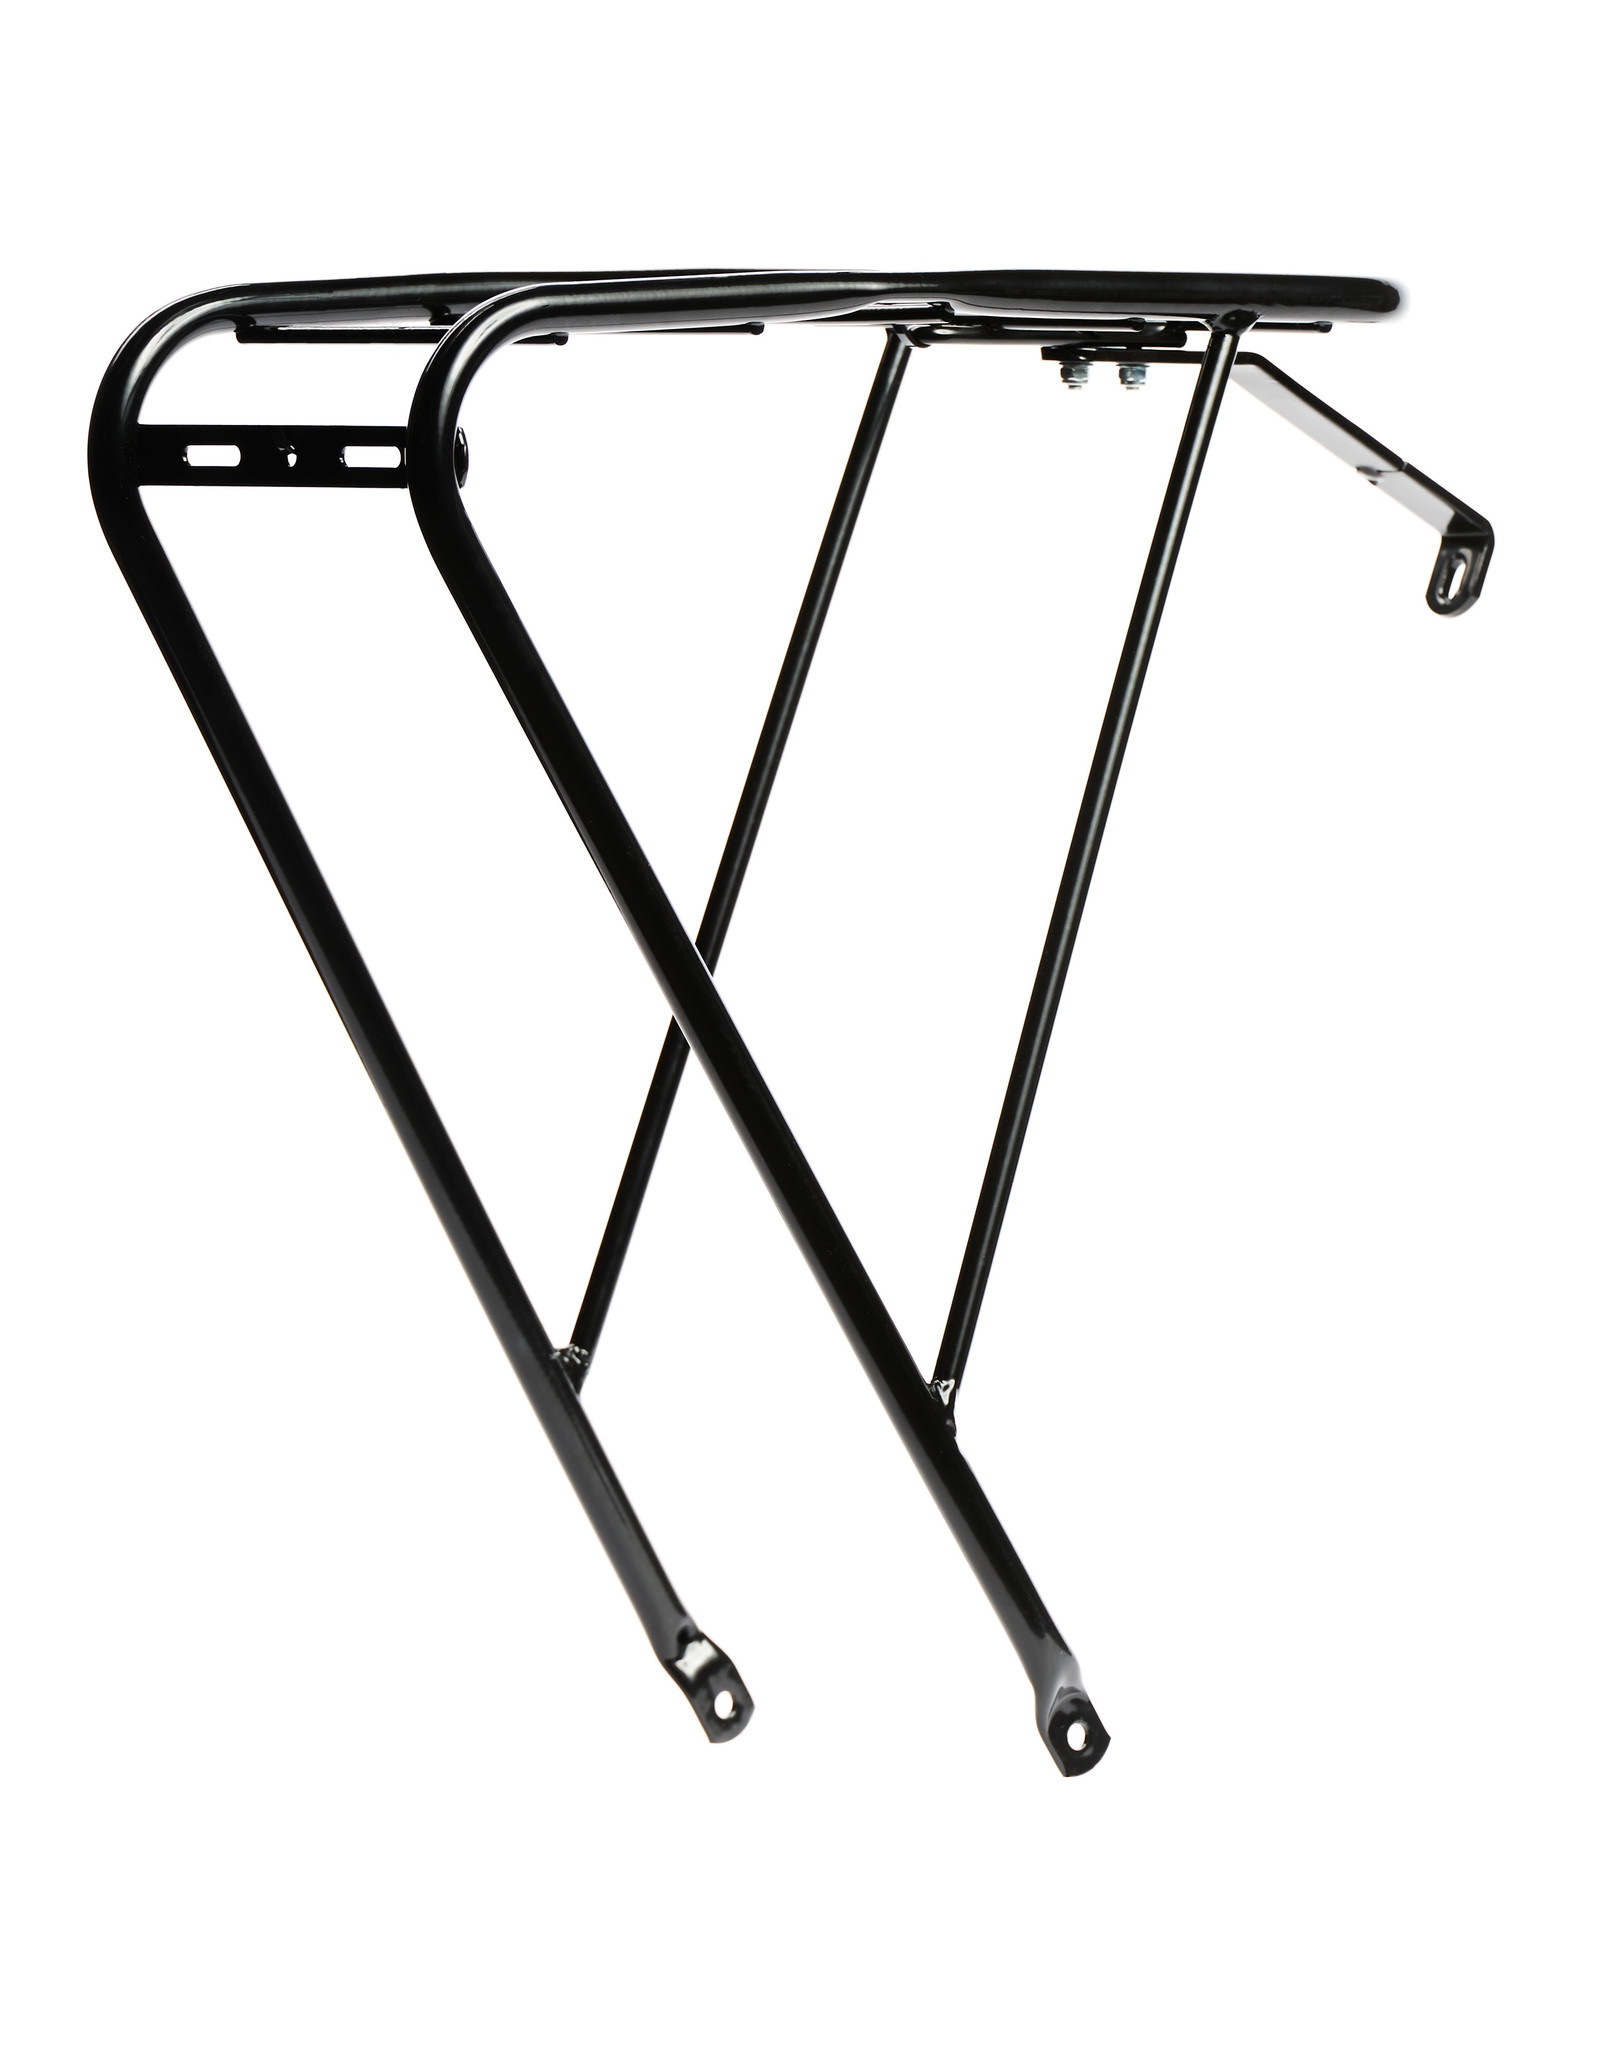 Luggage carrier - Copy